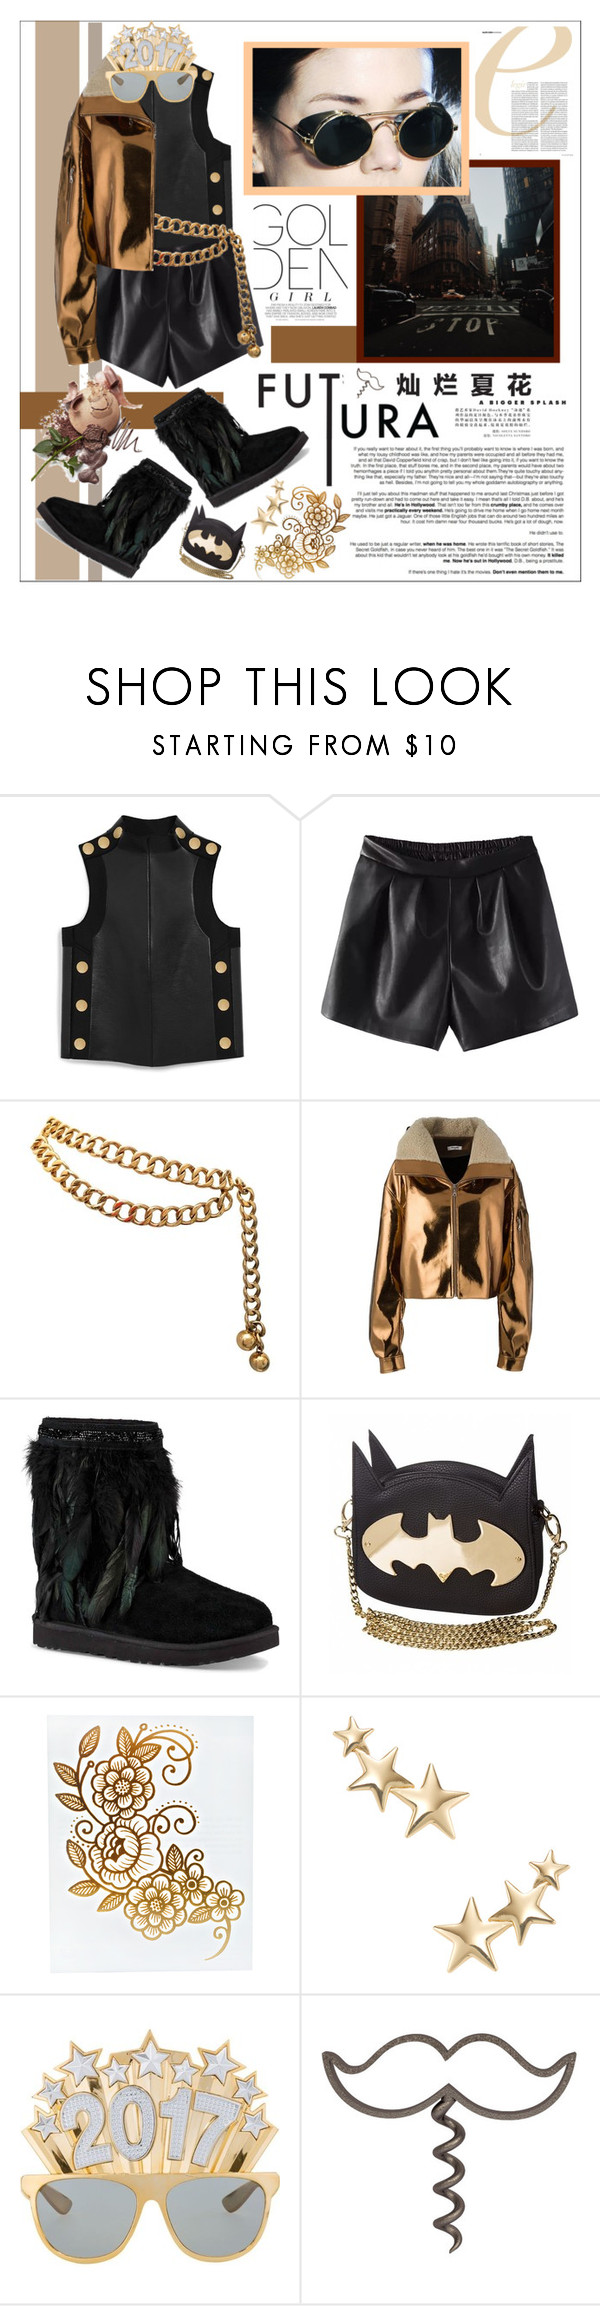 """""""Happy New Year 🎉🎉2017🎉🎉"""" by biinabnab ❤ liked on Polyvore featuring Mulberry, Chanel, Masha Ma, UGG, Behance, Lauren Conrad and Kenneth Jay Lane"""